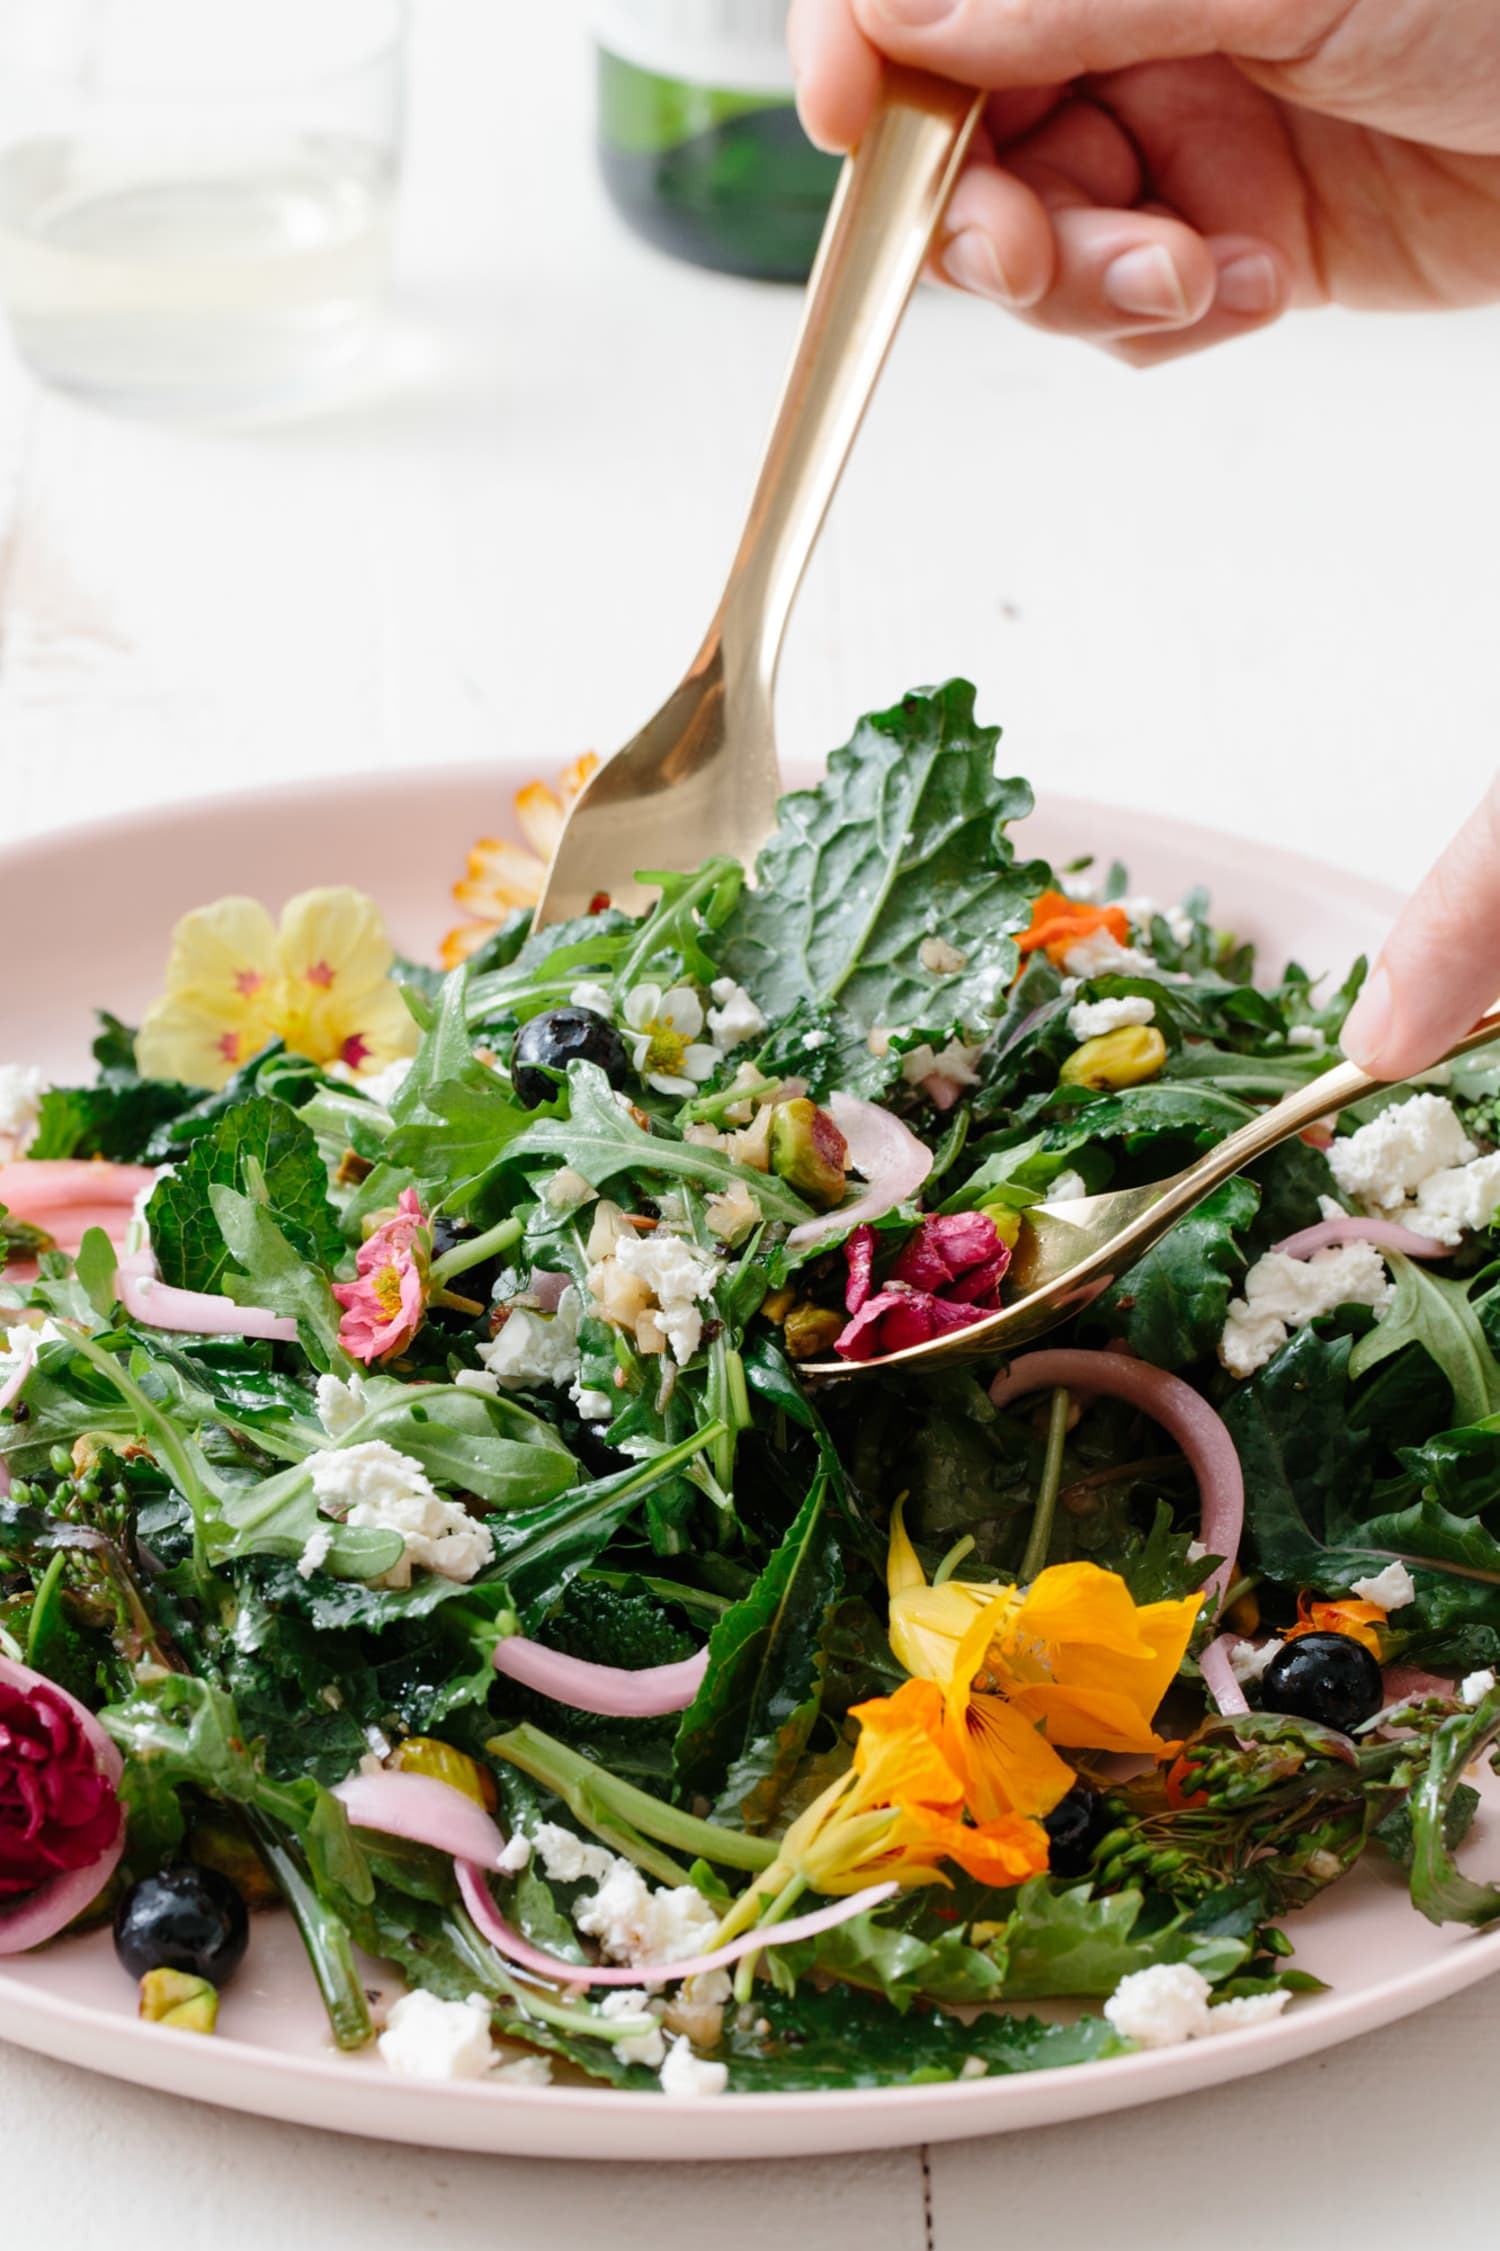 5 Tips For Making And Serving A Better Party Salad Kitchn